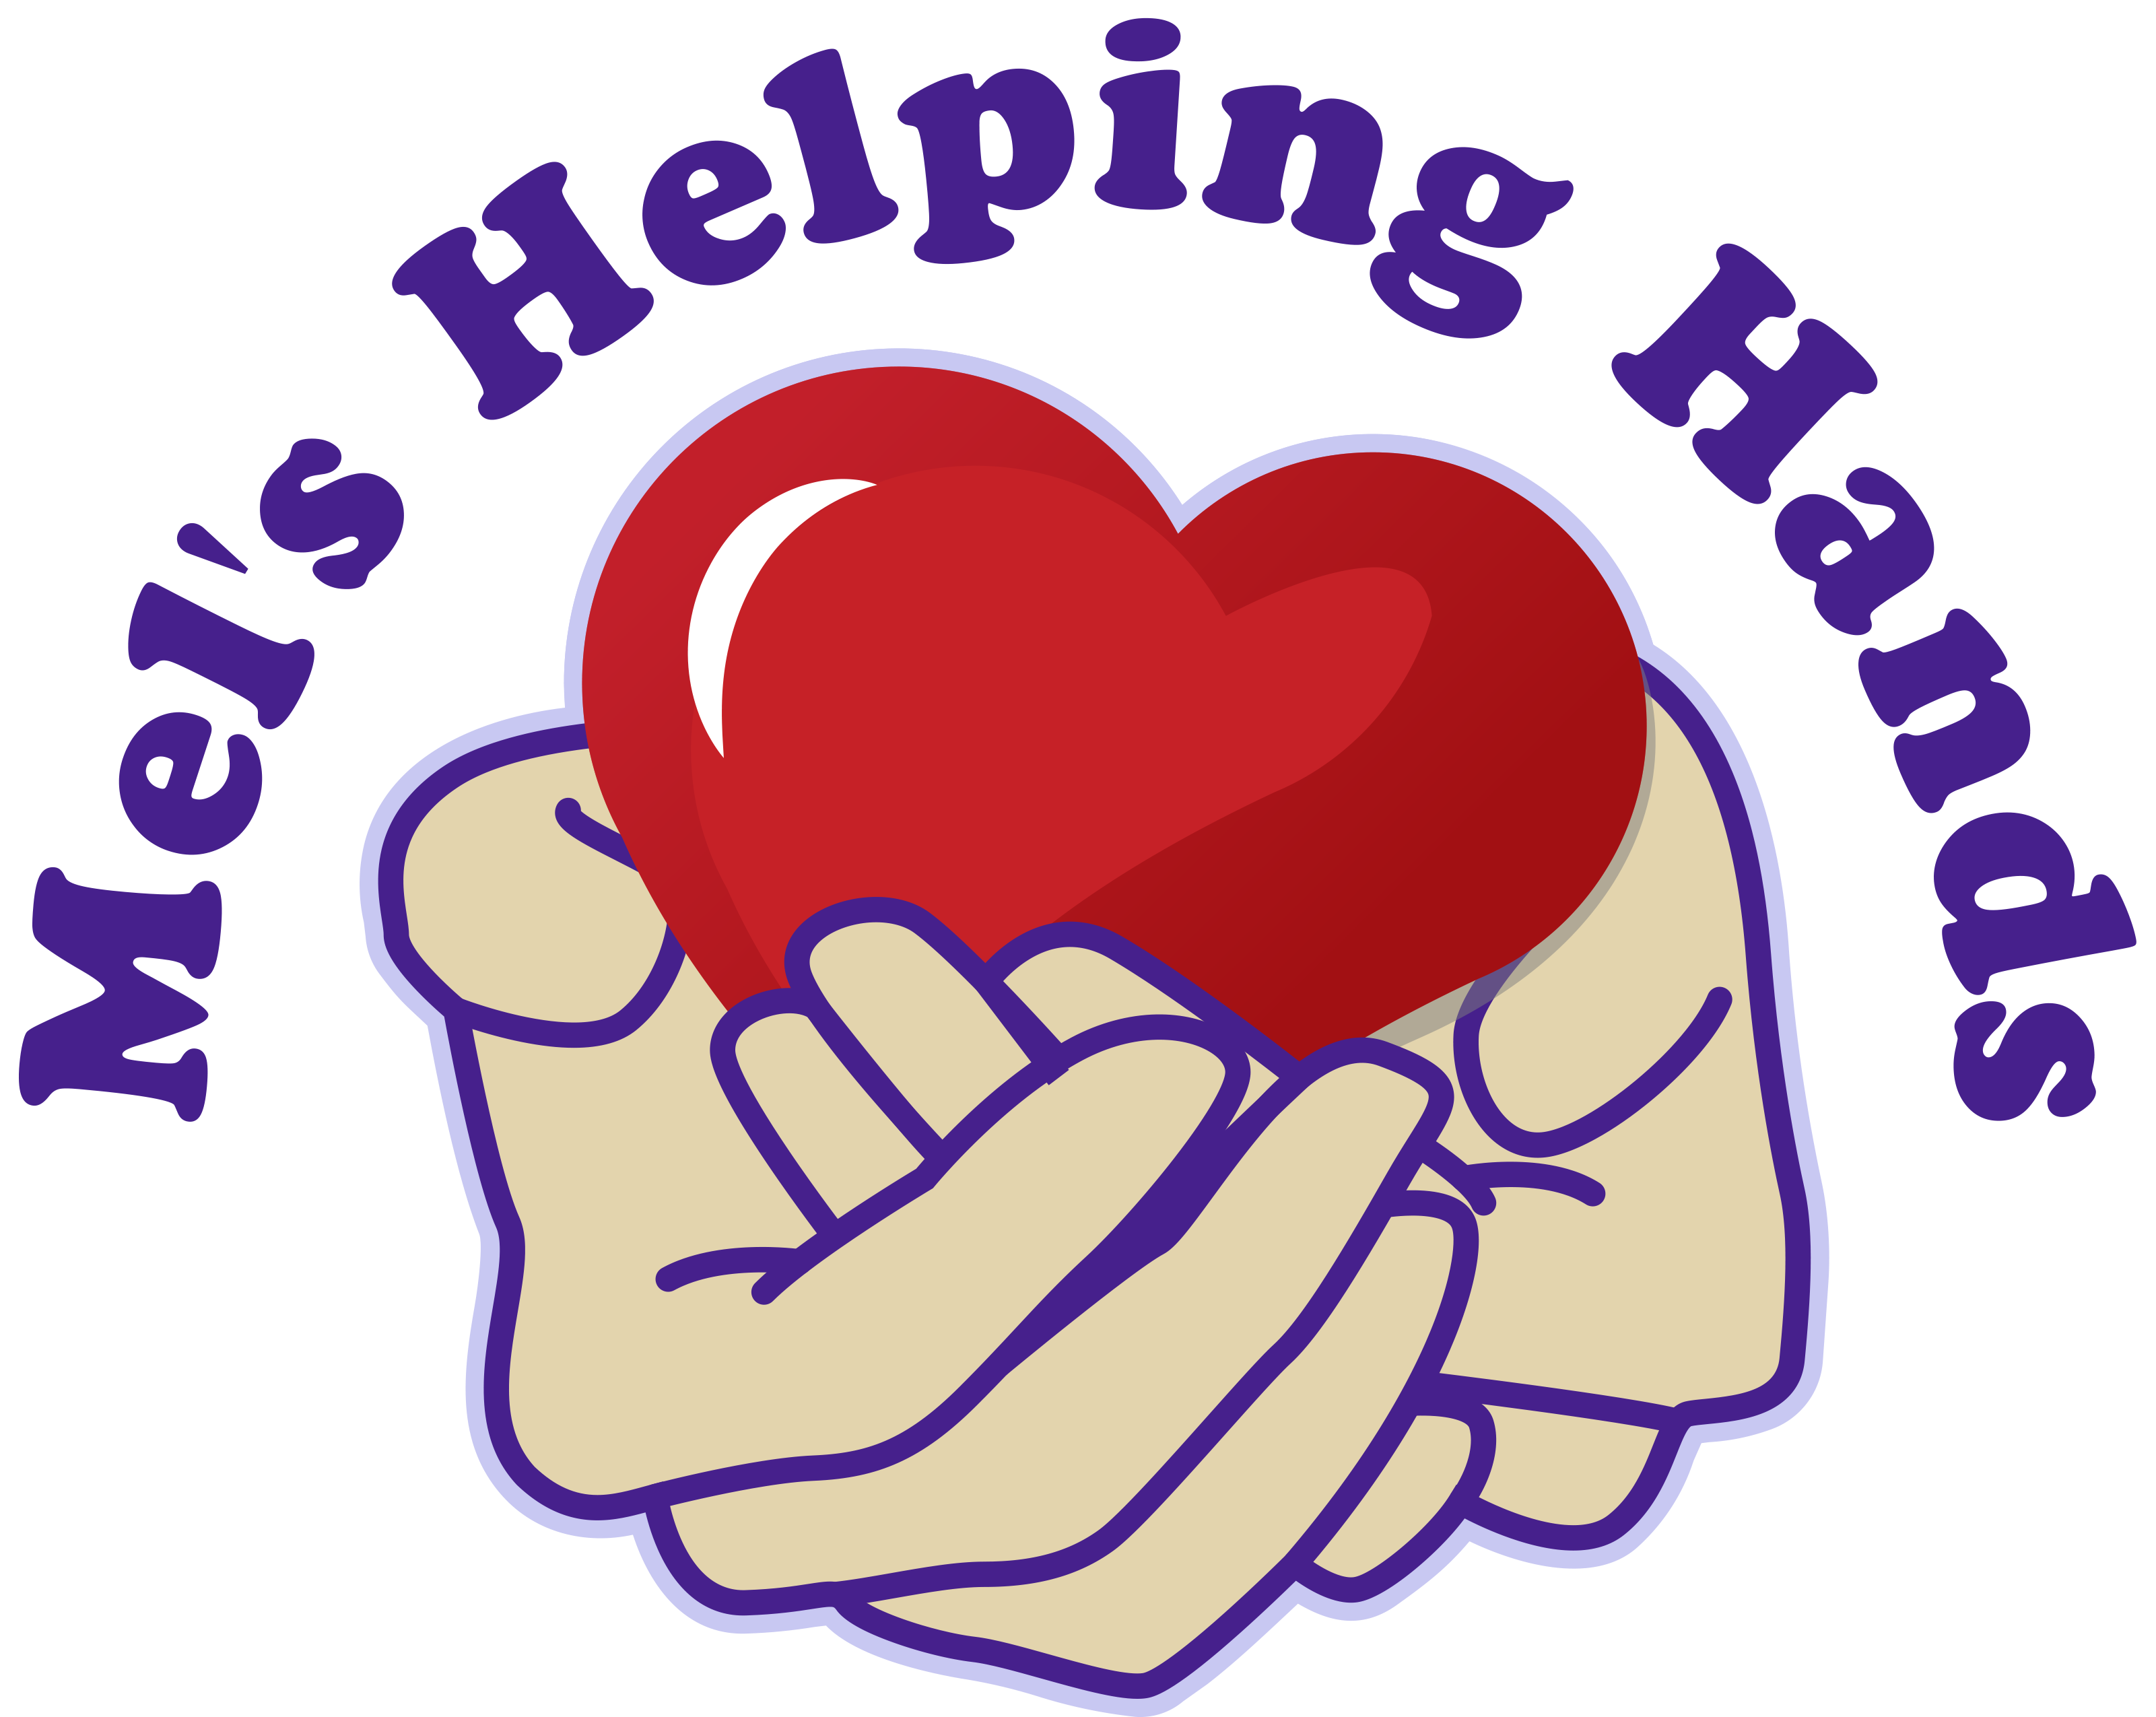 Caring heart clipart graphic free library In Home Senior Care & Caregivers: Casper, WY: Mel's Helping Hands LLC graphic free library